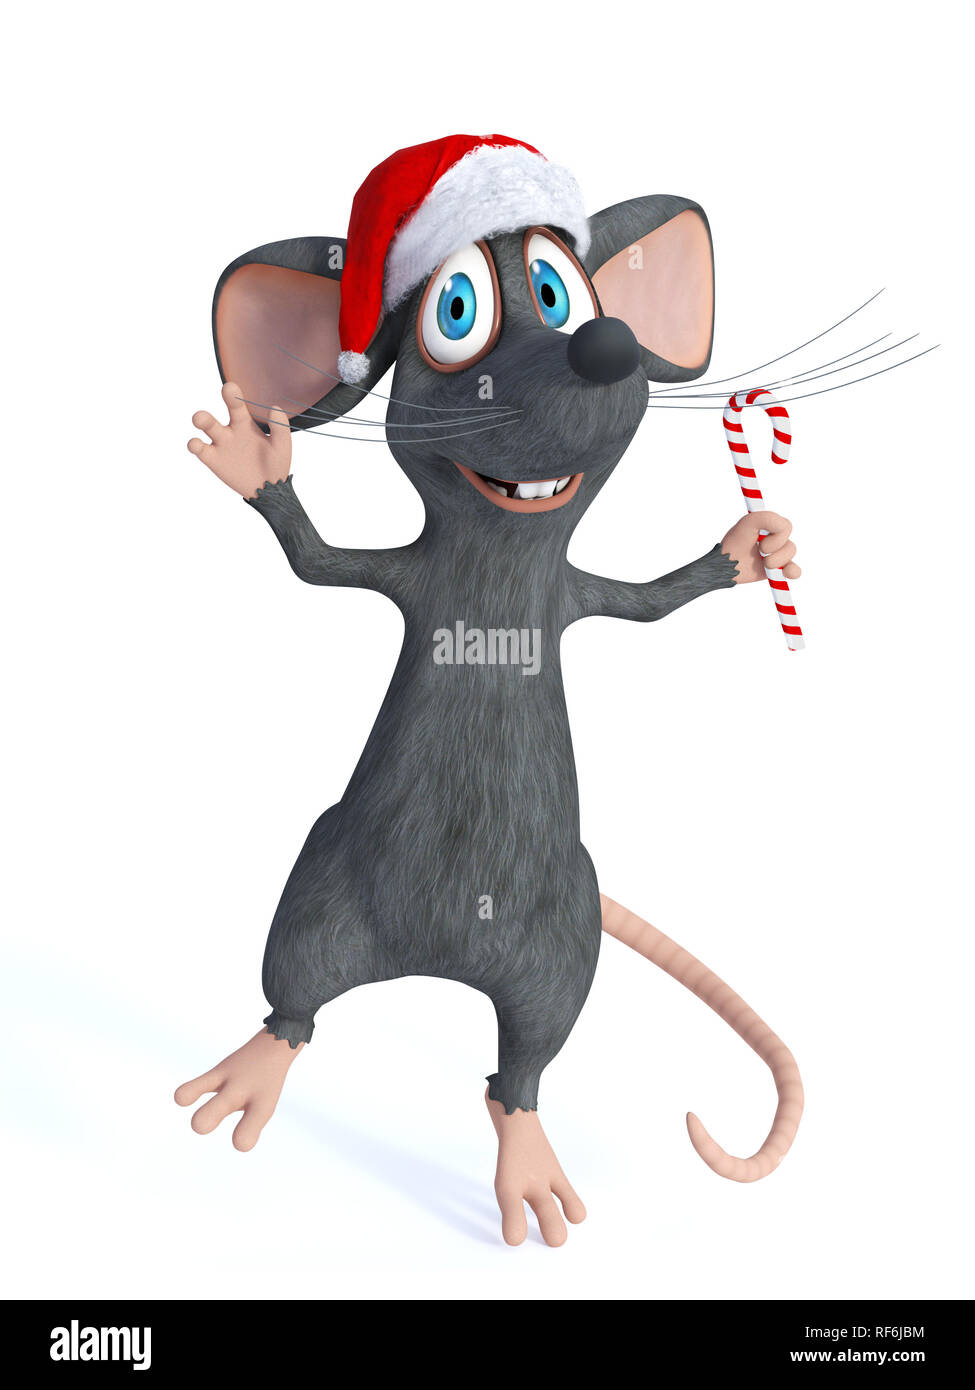 A cute smiling cartoon mouse wearing a Santa hat and jumping for joy with a candy cane in his hand. White background. - Stock Image